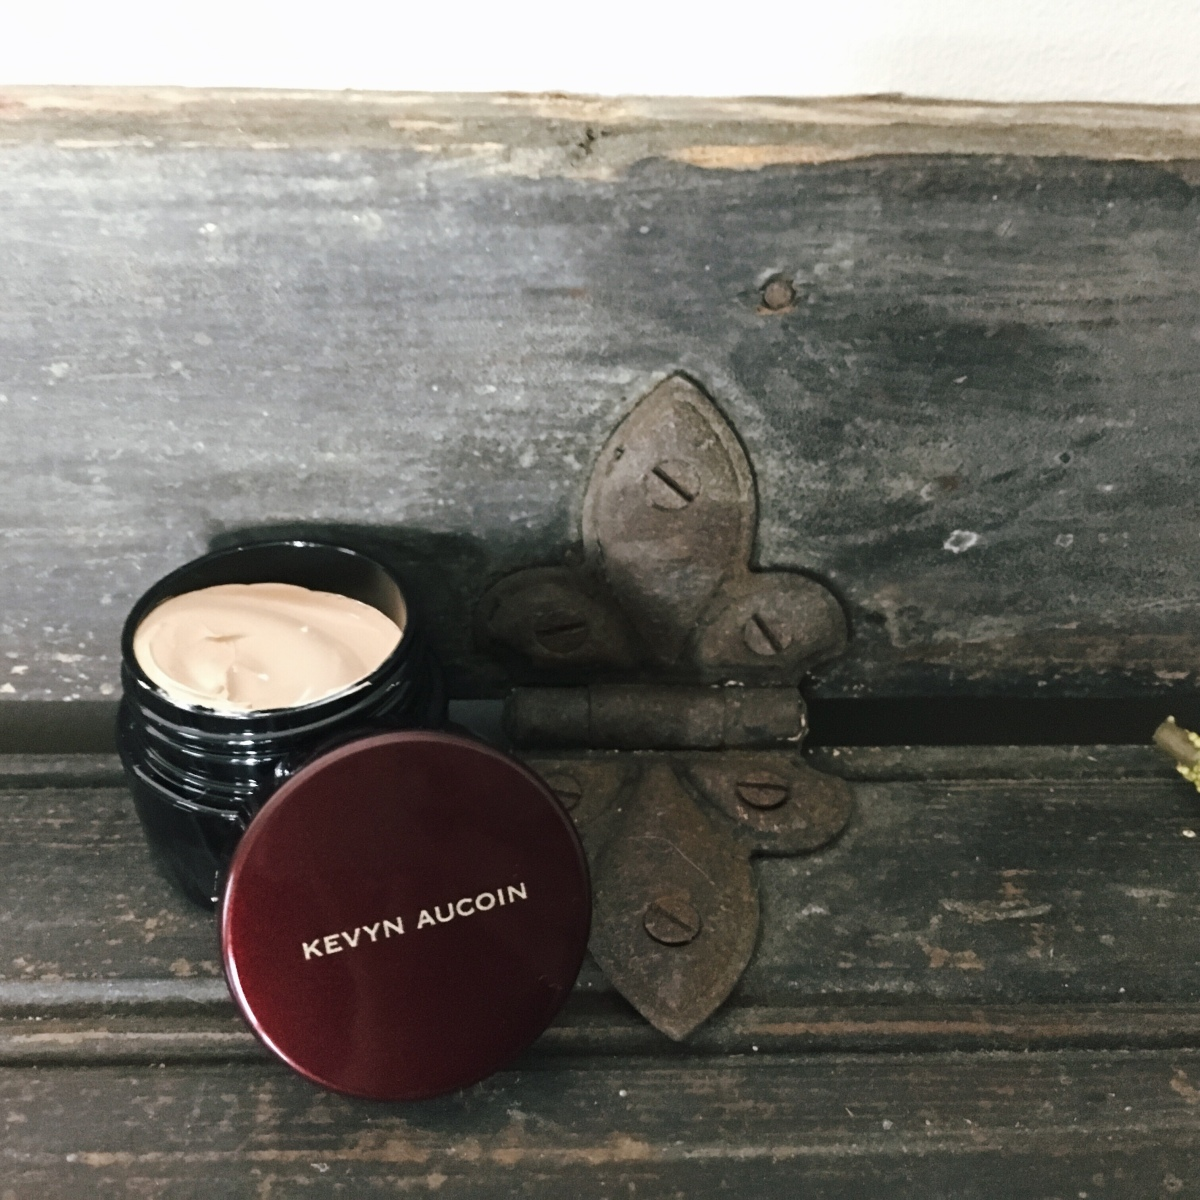 Kevin Aucoin – The Sensual Skin Enhancer Concealer and Foundation – Review